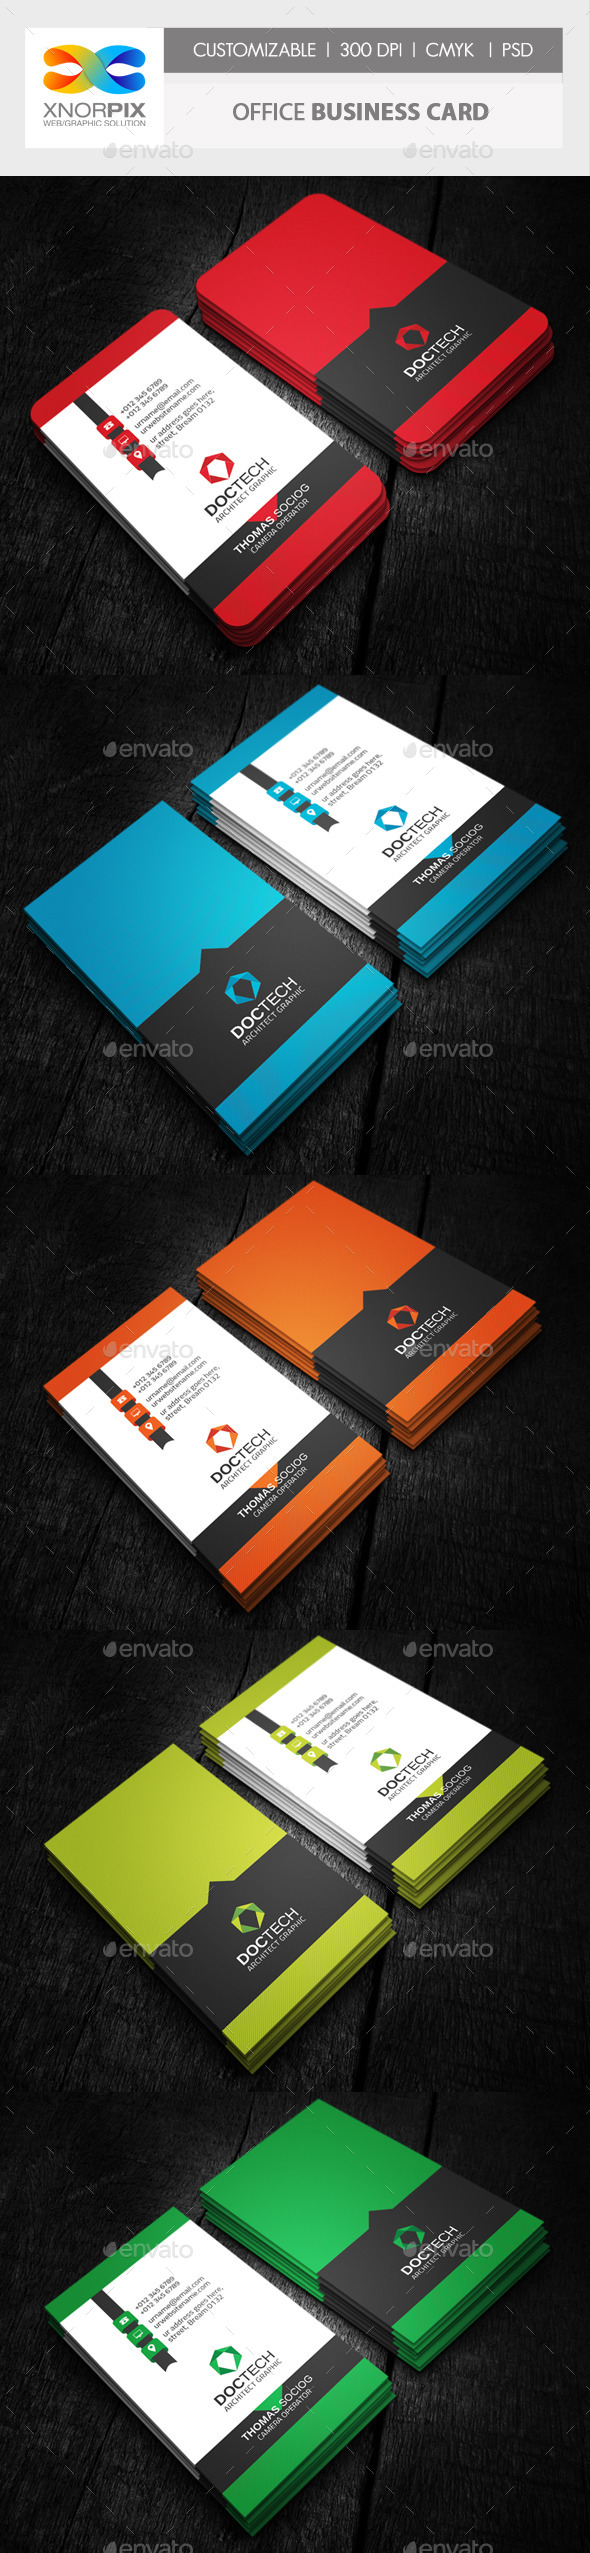 Office Business Card - Corporate Business Cards